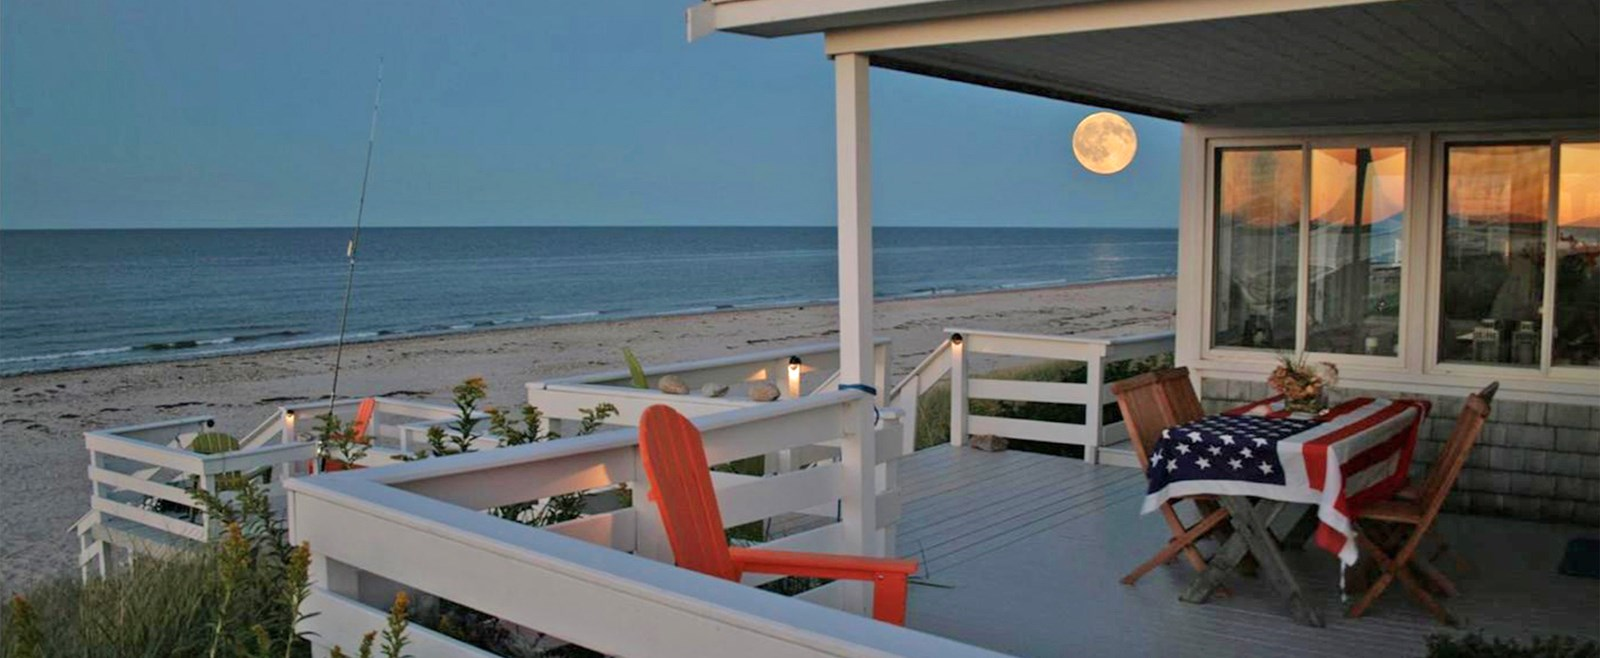 We have many wonderful vacation rentals on our site. Here are the top 10 most asked about from the past decade!